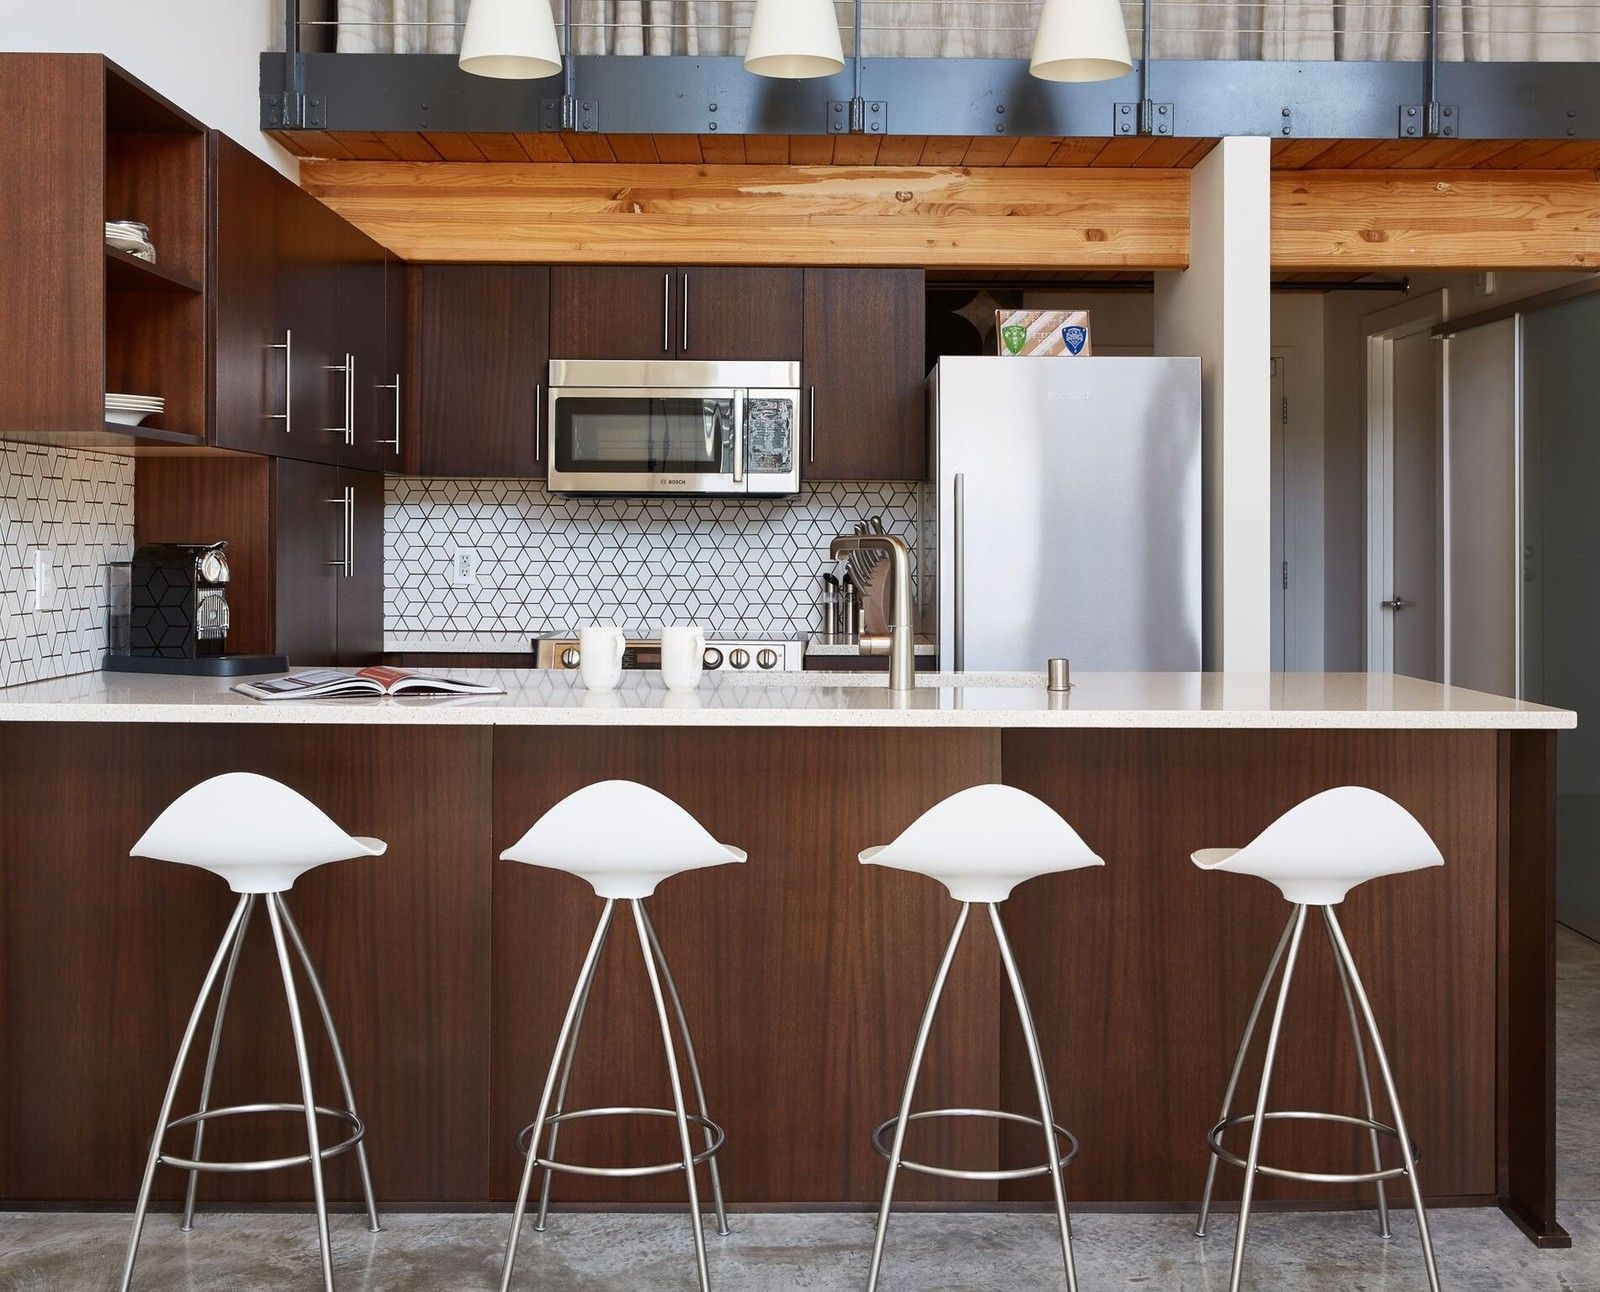 Spotted On Dwell An Industrial Loft In Seattle Refurbished By Joy Rondello With STUA Onda Stools